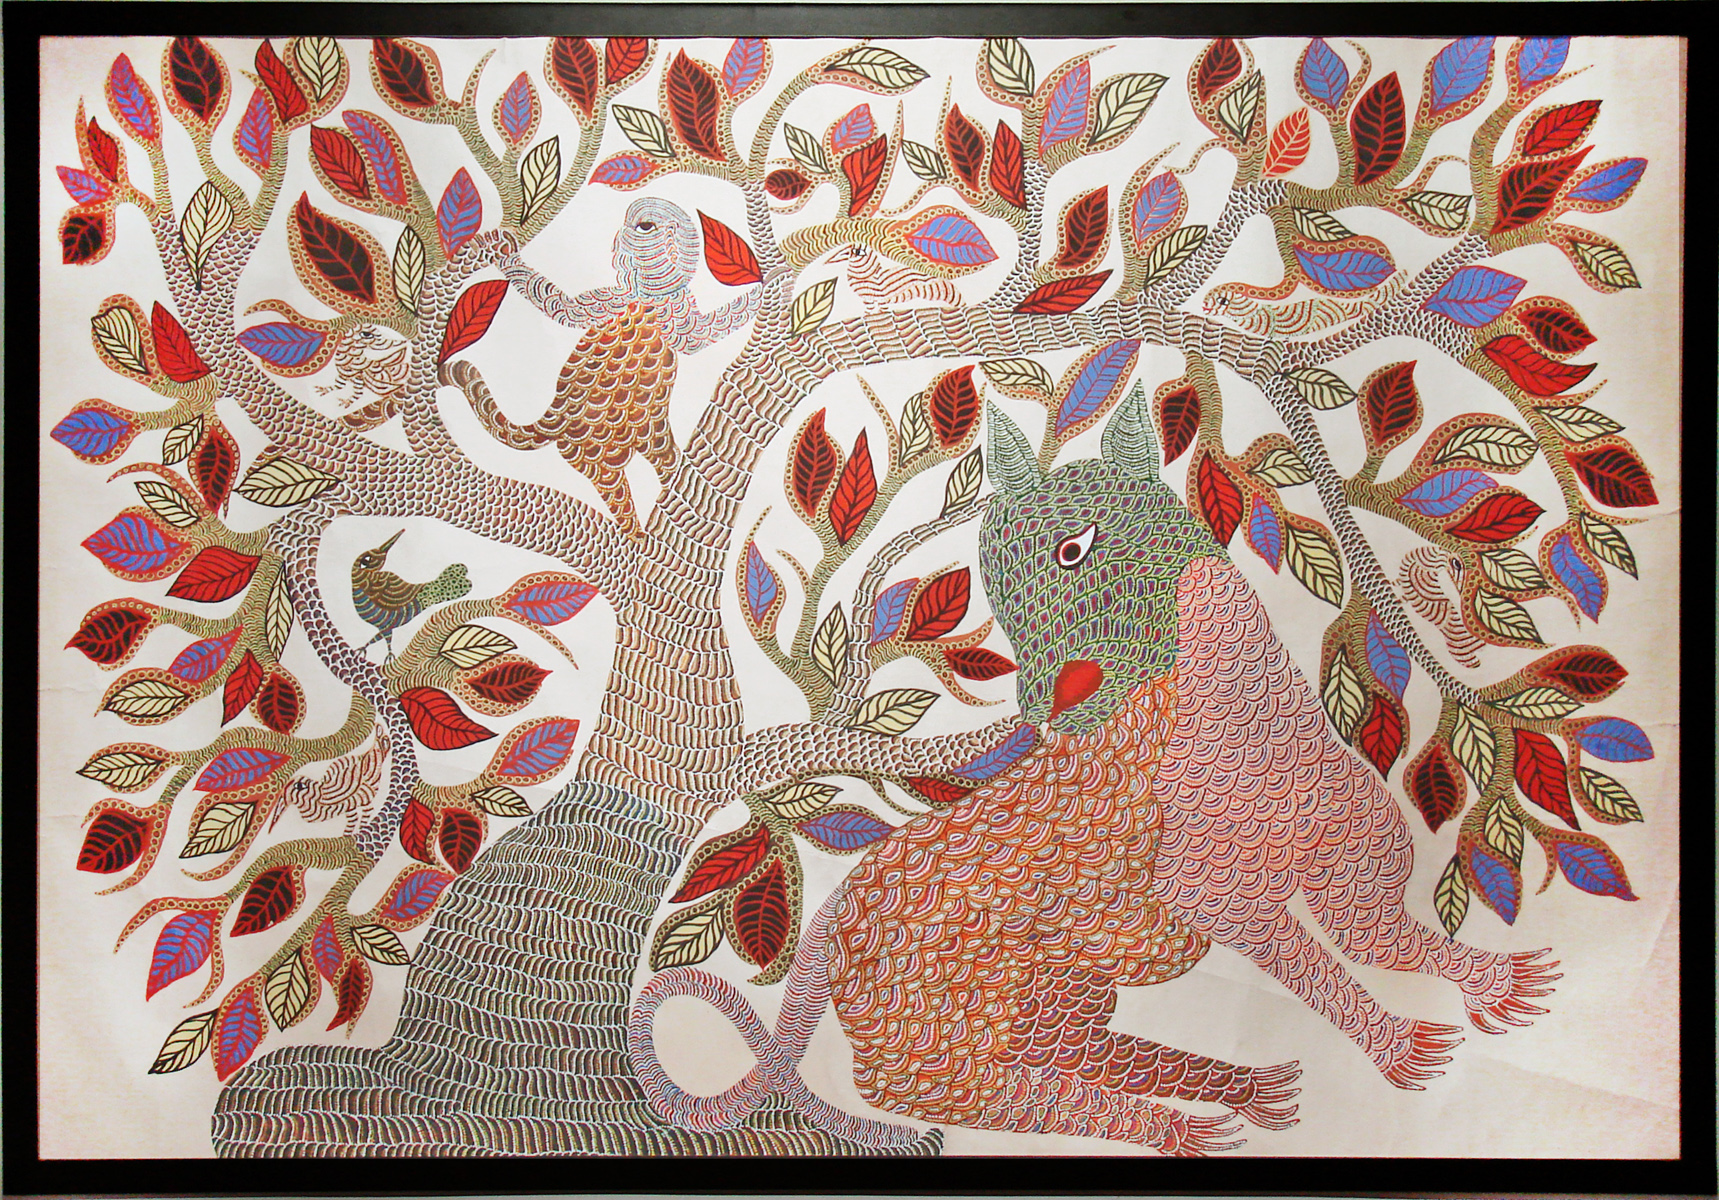 Gond Art | © Jean-Pierre Dalbéra / flickr